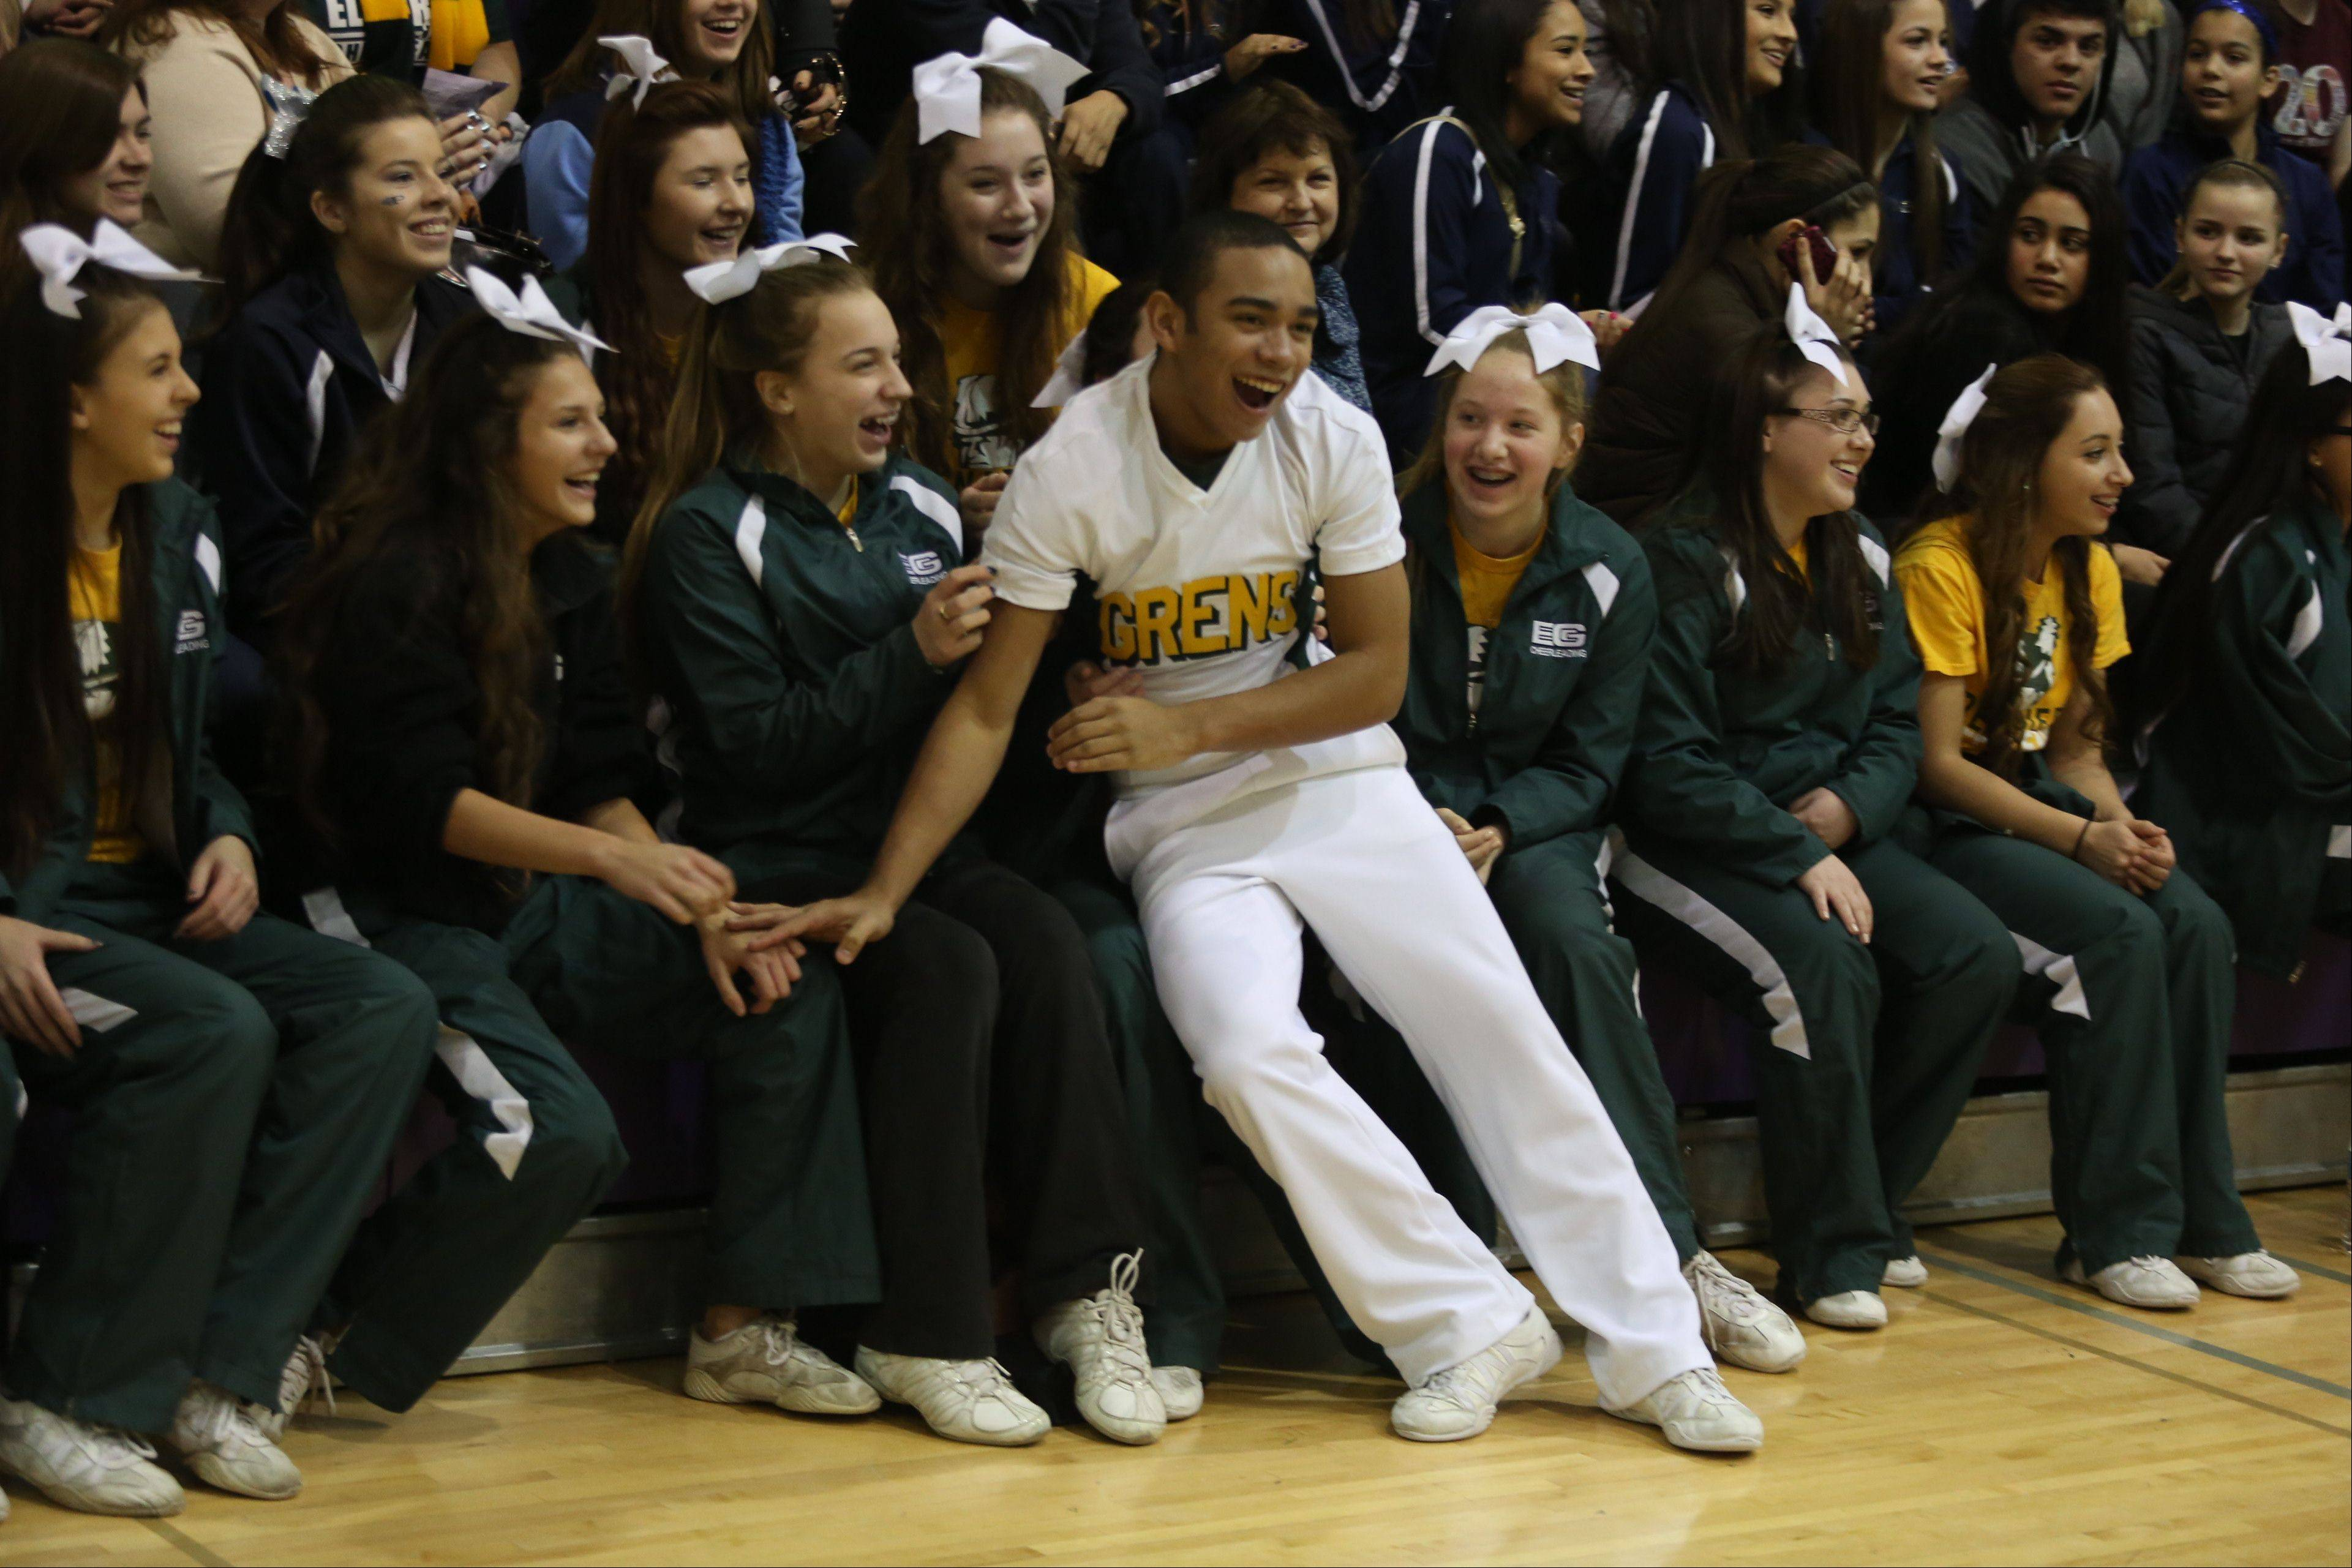 Fans cheer Elk Grove High School team after they compete in the Coed Team category during the IHSA Cheerleading Sectional Sunday hosted by Rolling Meadows High School.